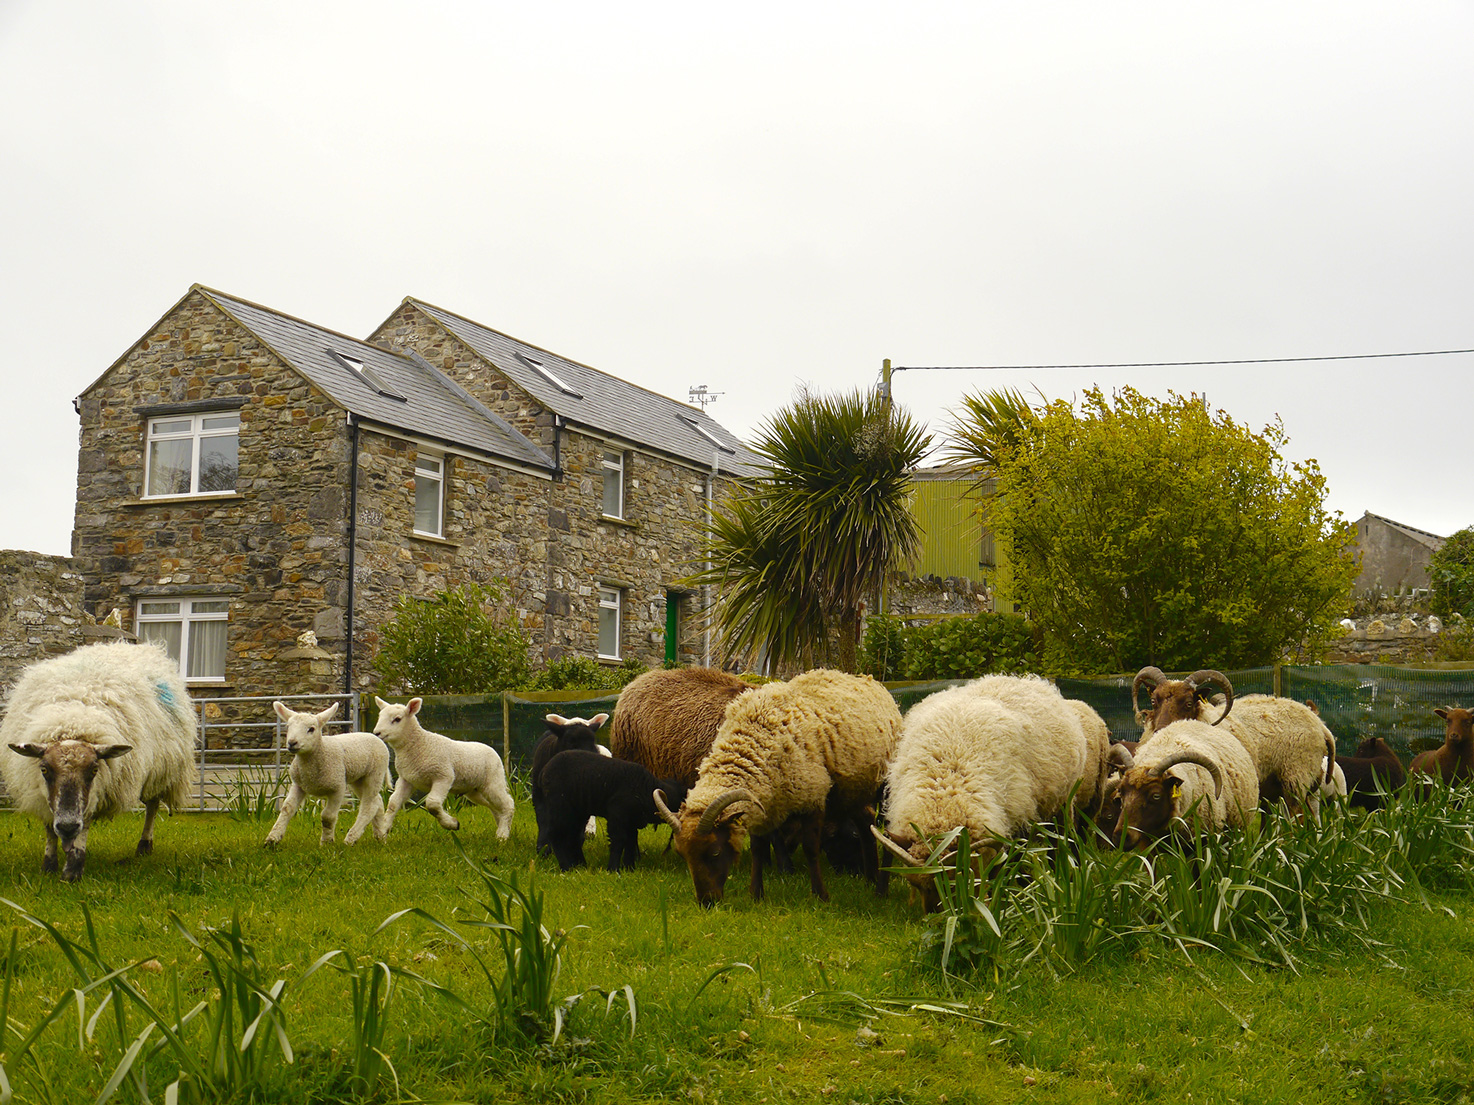 Spring Lambs leaping outside The Stable